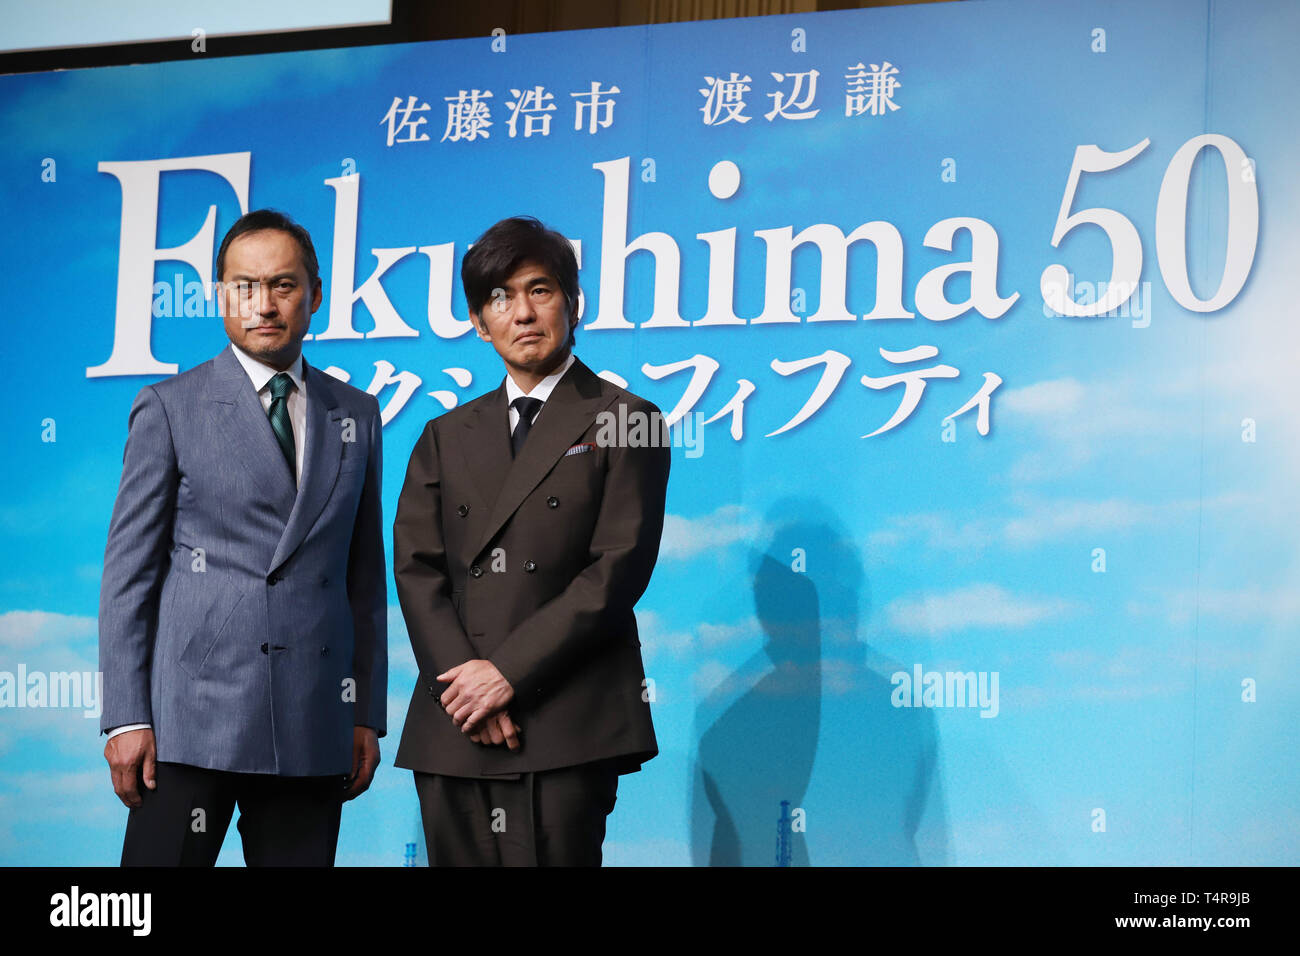 """Tokyo, Japan. 17th Apr, 2019. Japanese actors Ken Watanabe (L) and Koichi Sato pose for photo at a press conference for their latest movie """"Fukushima 50"""" as the film was just finished shooting in Tokyo on Wednesday, April 17, 2019. """"Fukushima 50"""" is a movie featuring 50 TEPCO workers at the crippled Fukushima Dai-ichi nuclear plant after 3.11 tsunami and earthquake disasters and the movie is expecting to be released globally next year. Credit: Yoshio Tsunoda/AFLO/Alamy Live News Stock Photo"""